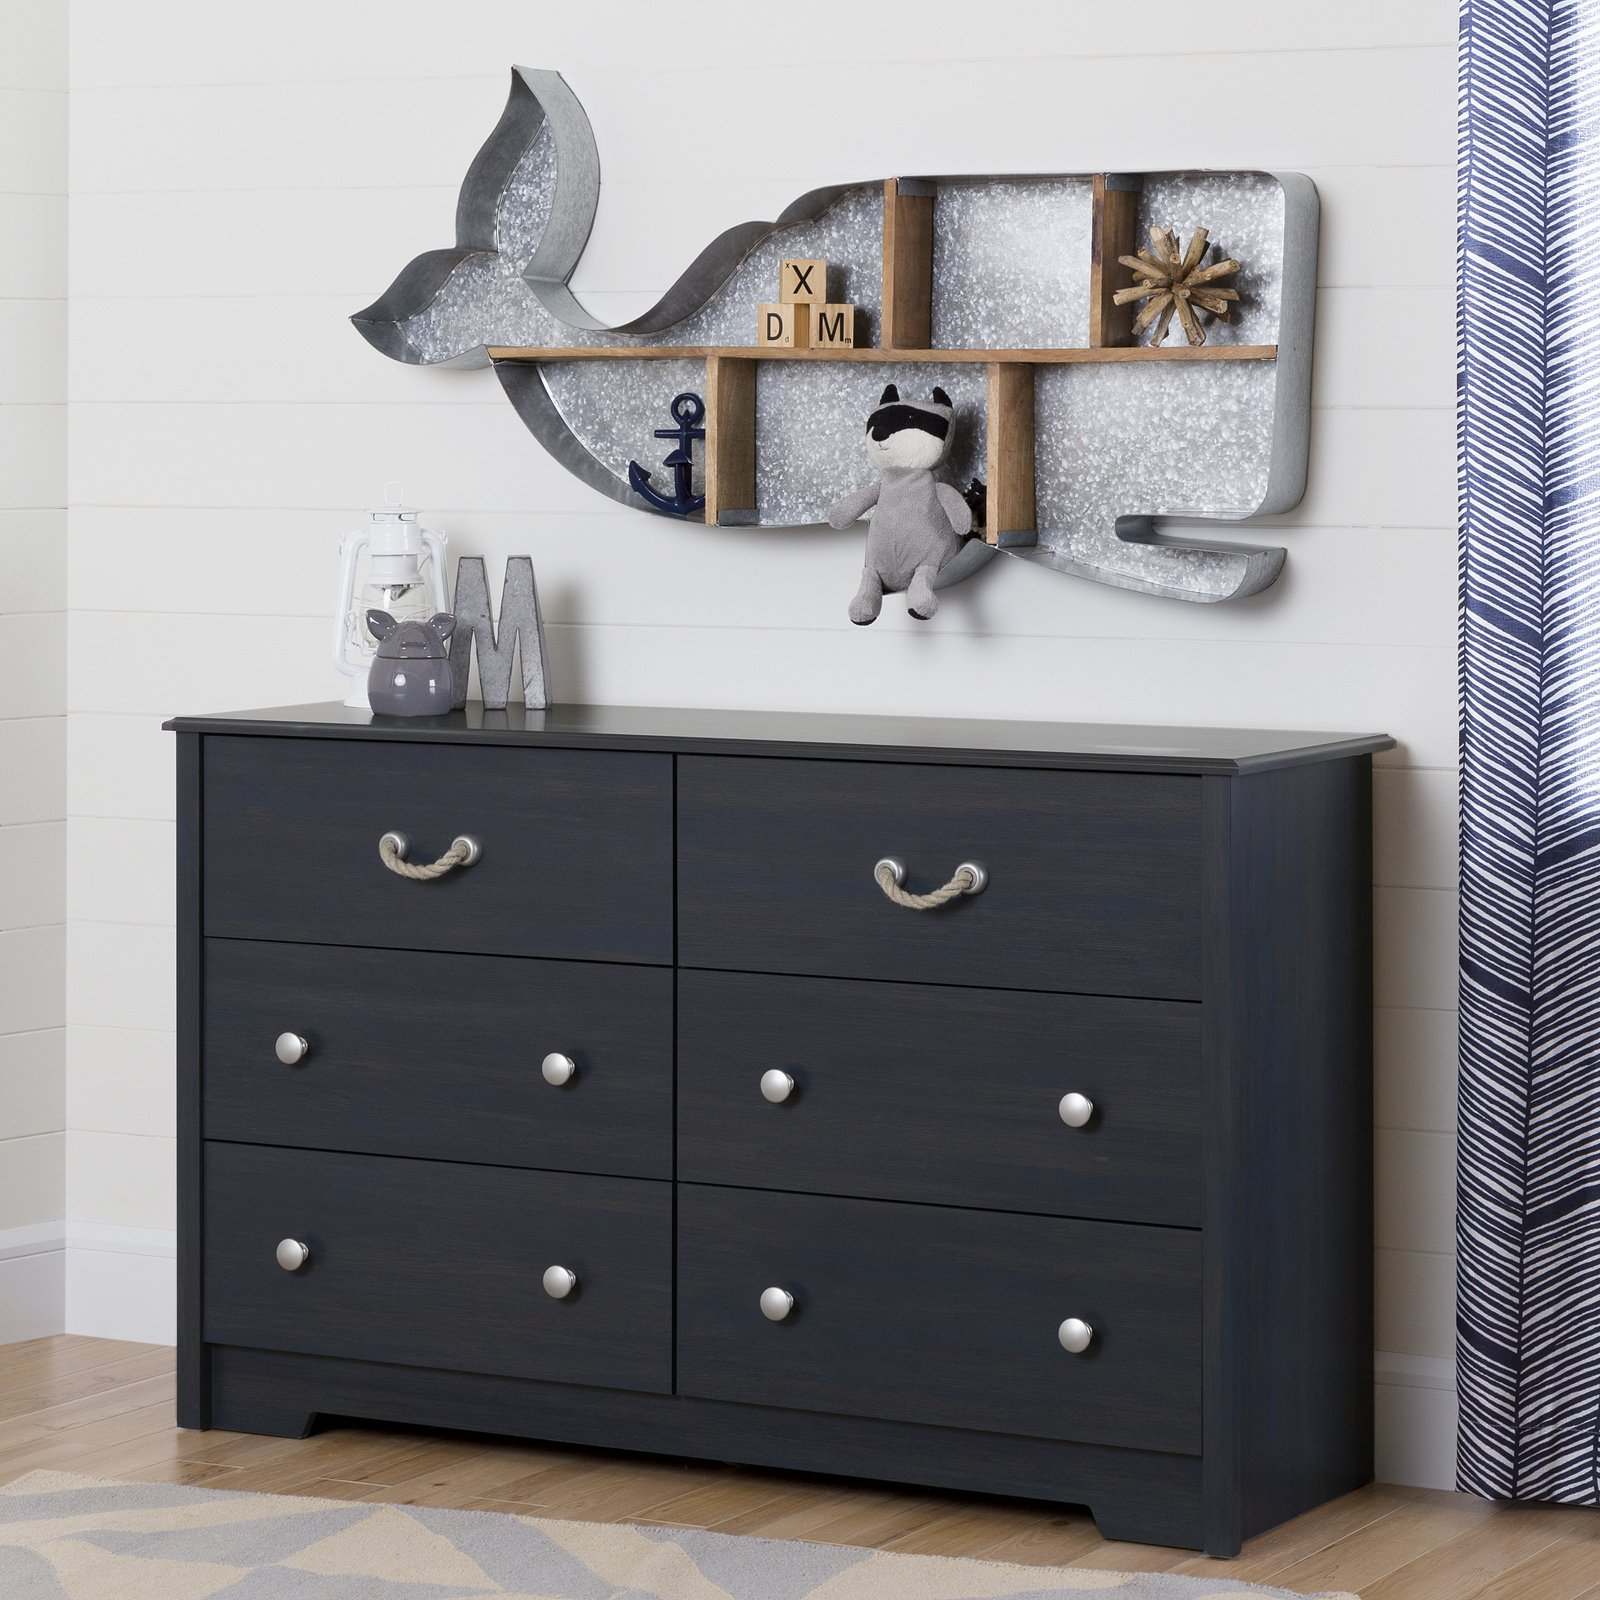 South Shore Aviron 6-Drawer Double Dresser, Blueberry by South Shore